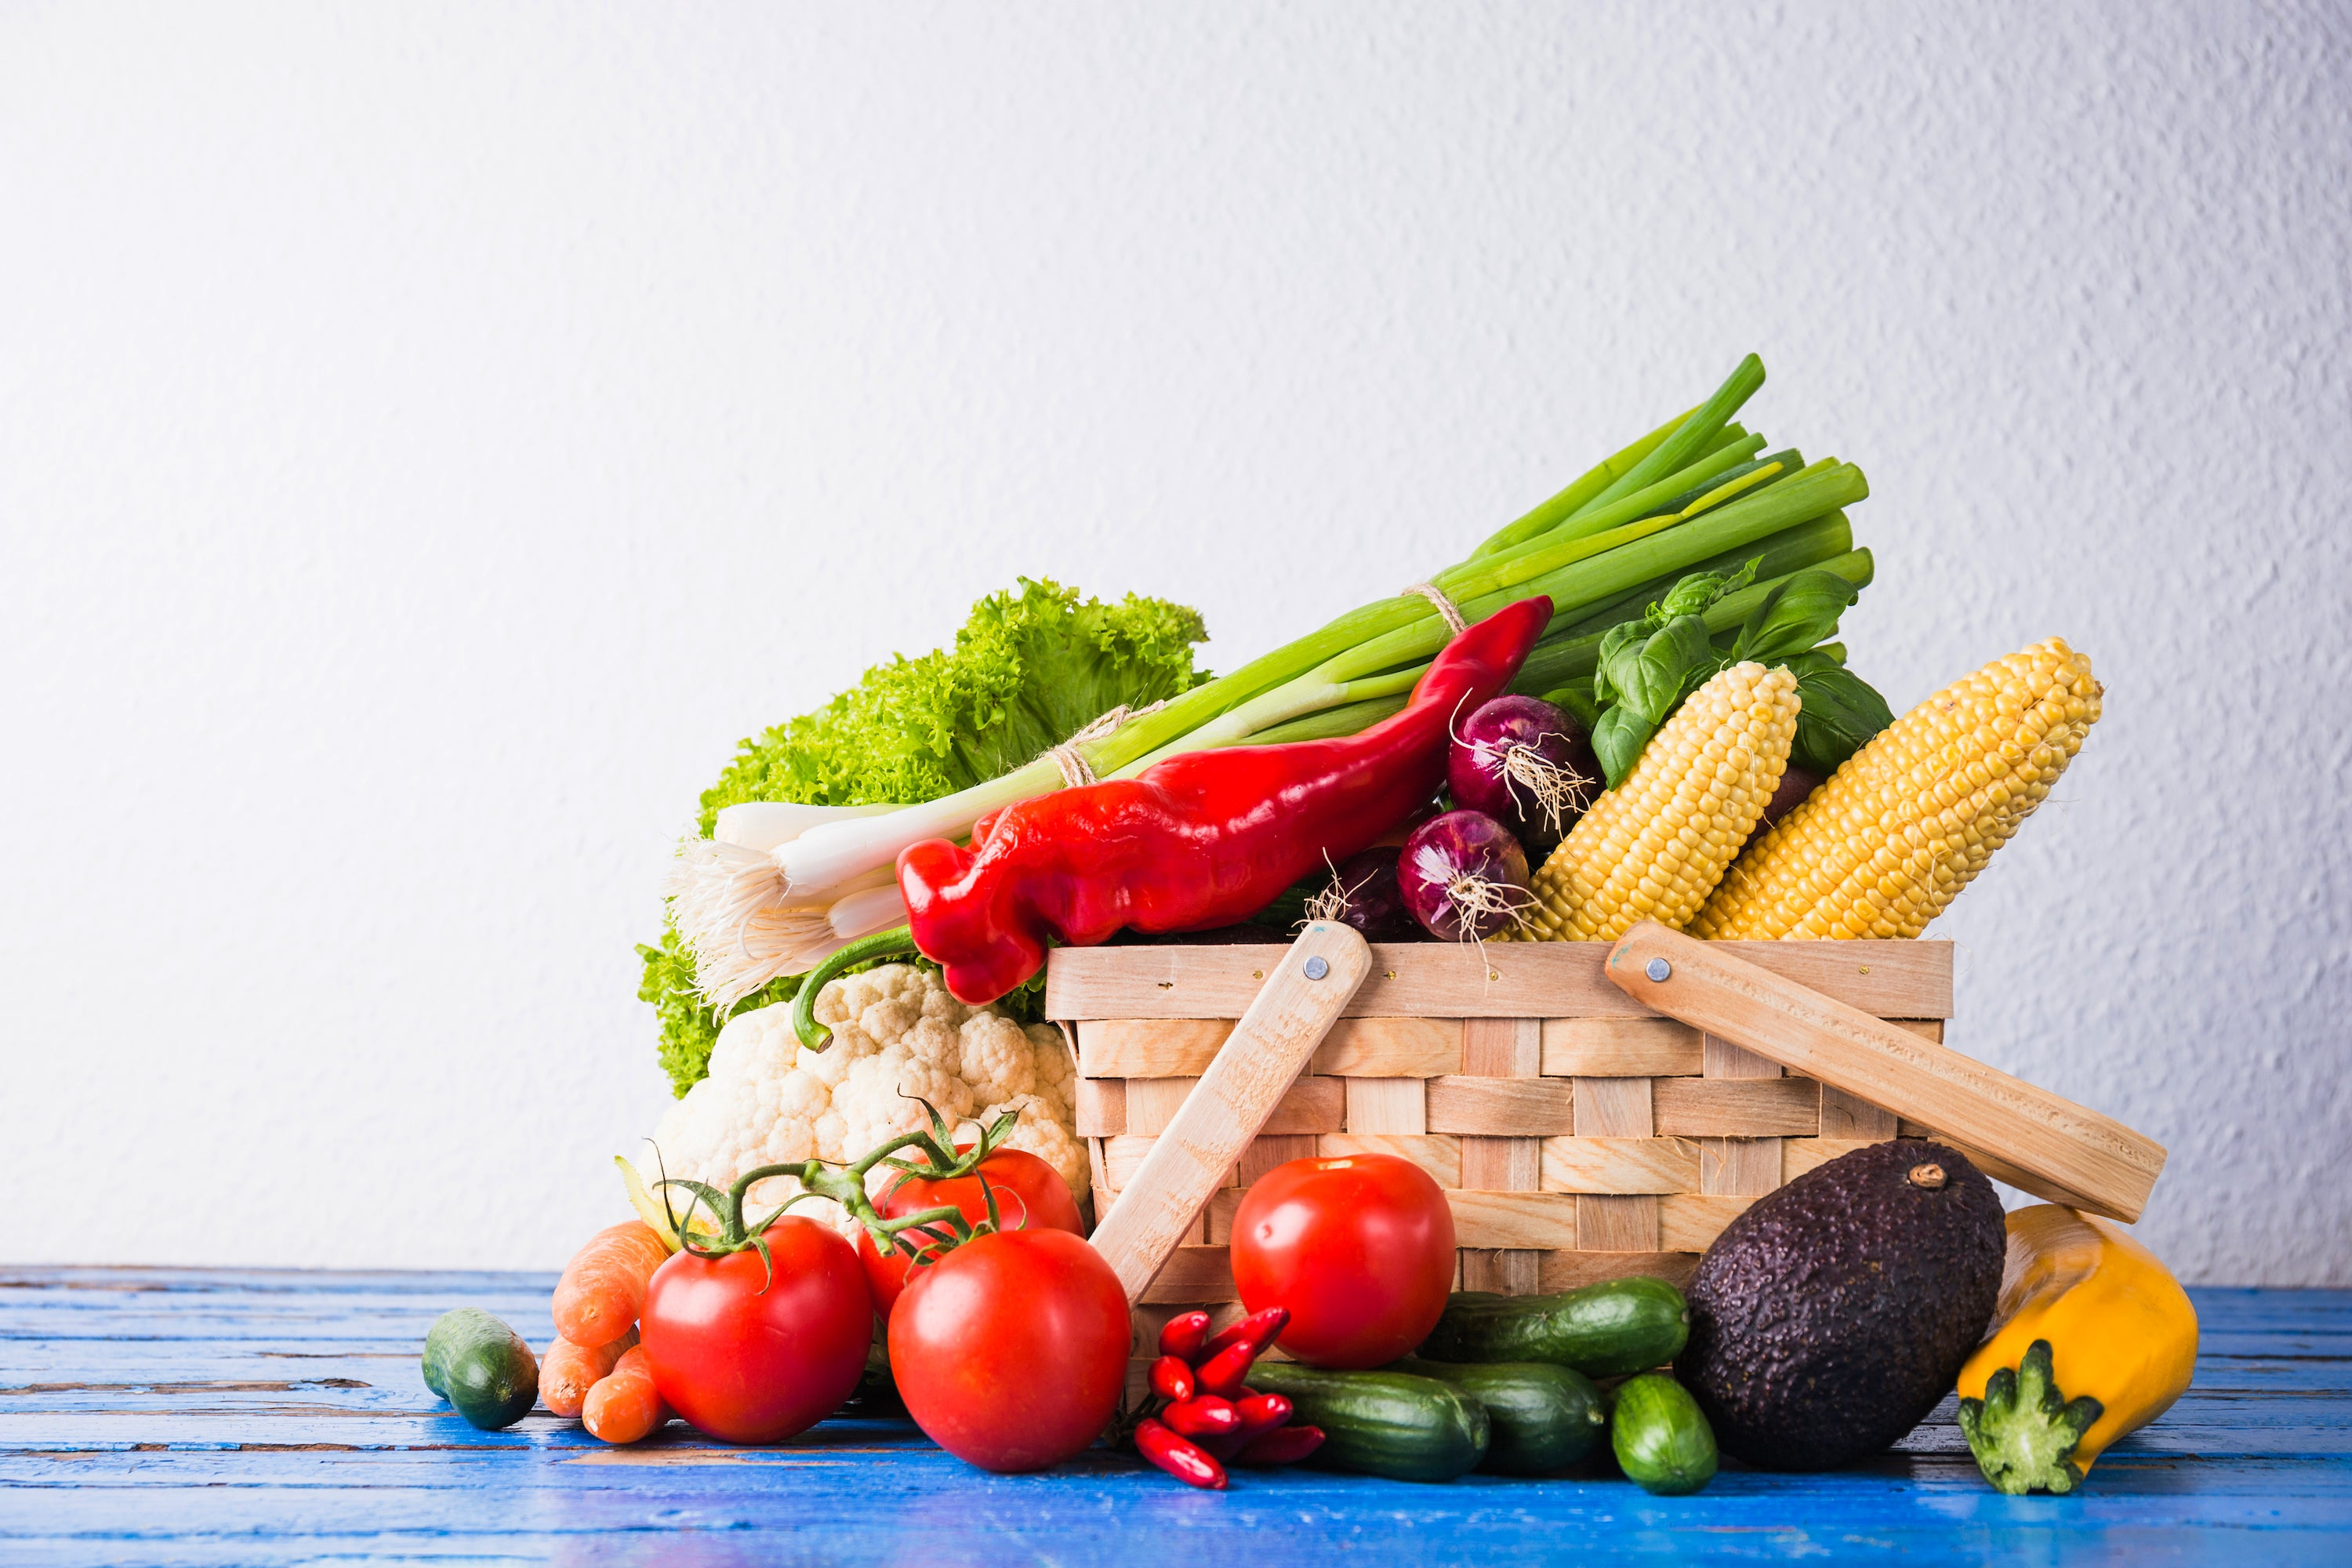 Vegetables in Basket, What Produce is in Season in Autumn?